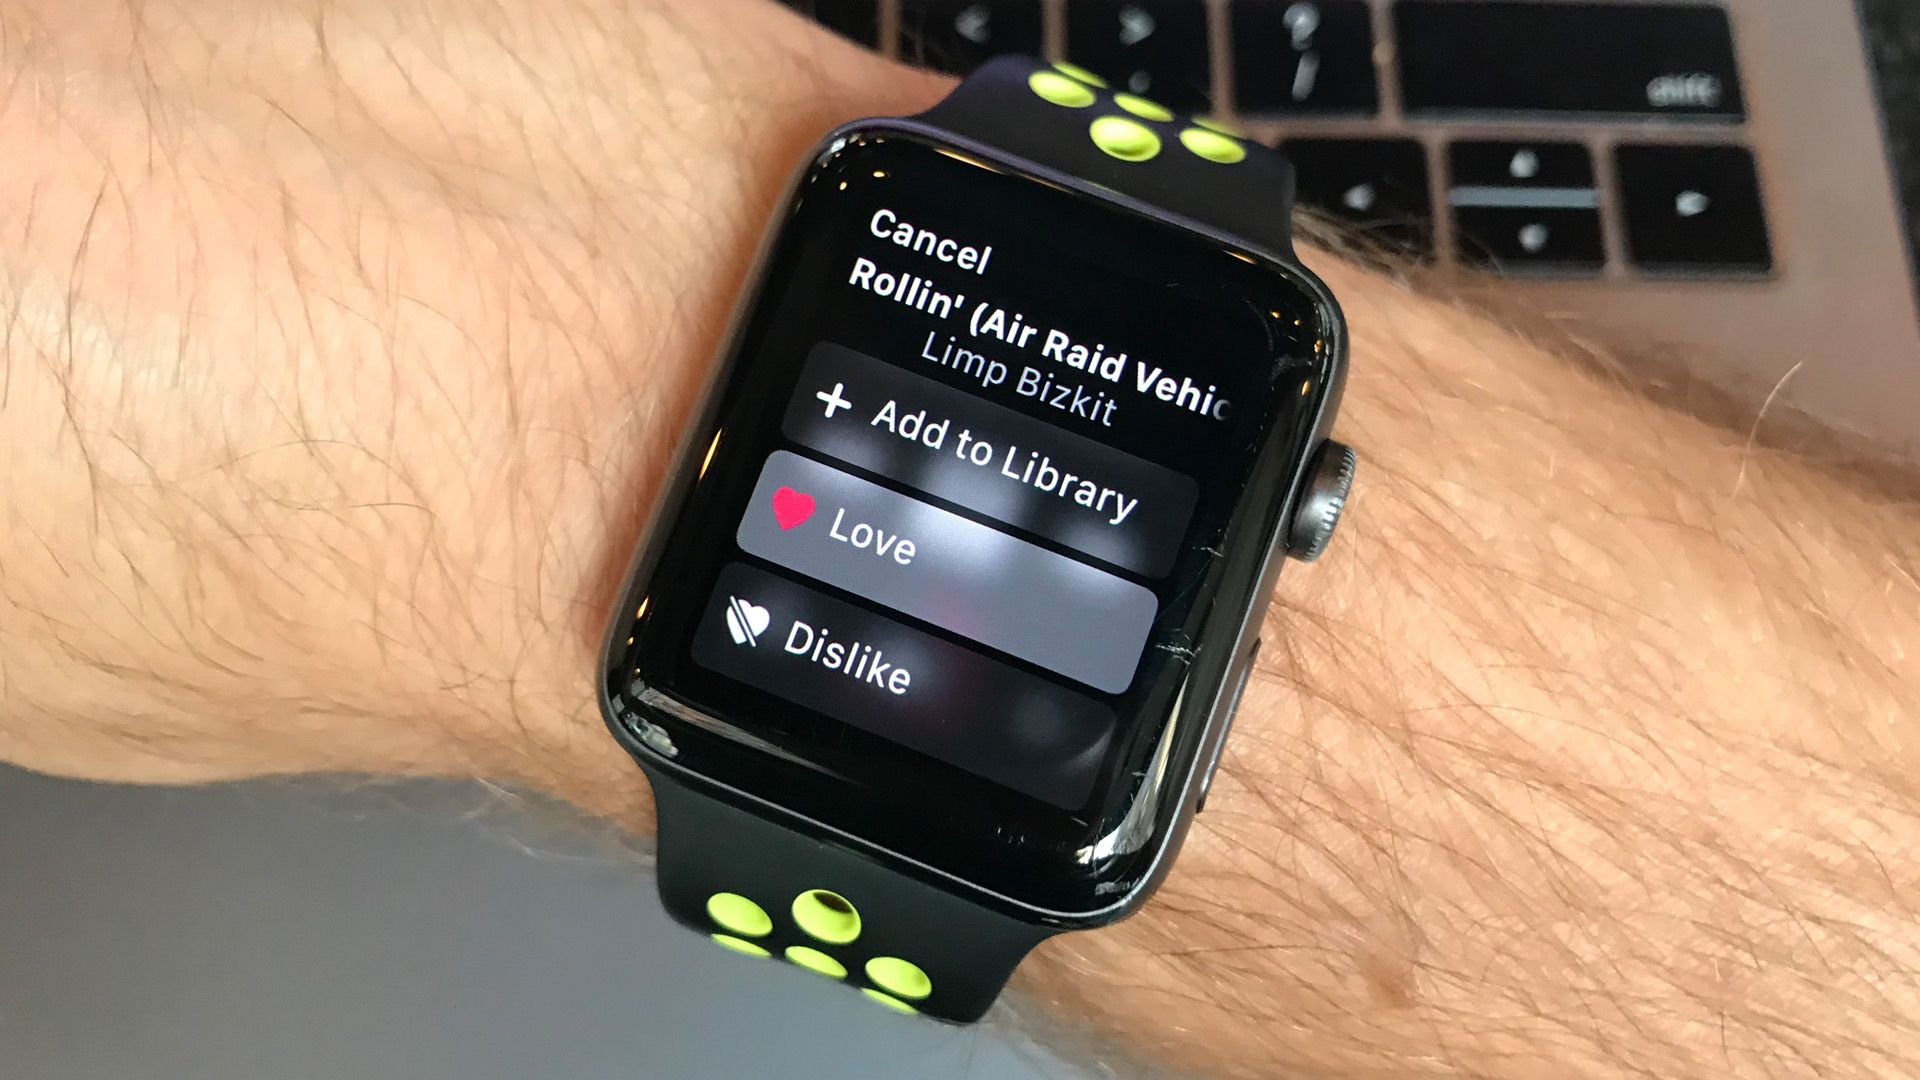 "It's so easy to ""like"" a song when using Apple Music, just ask Siri or tap it on your wrist."